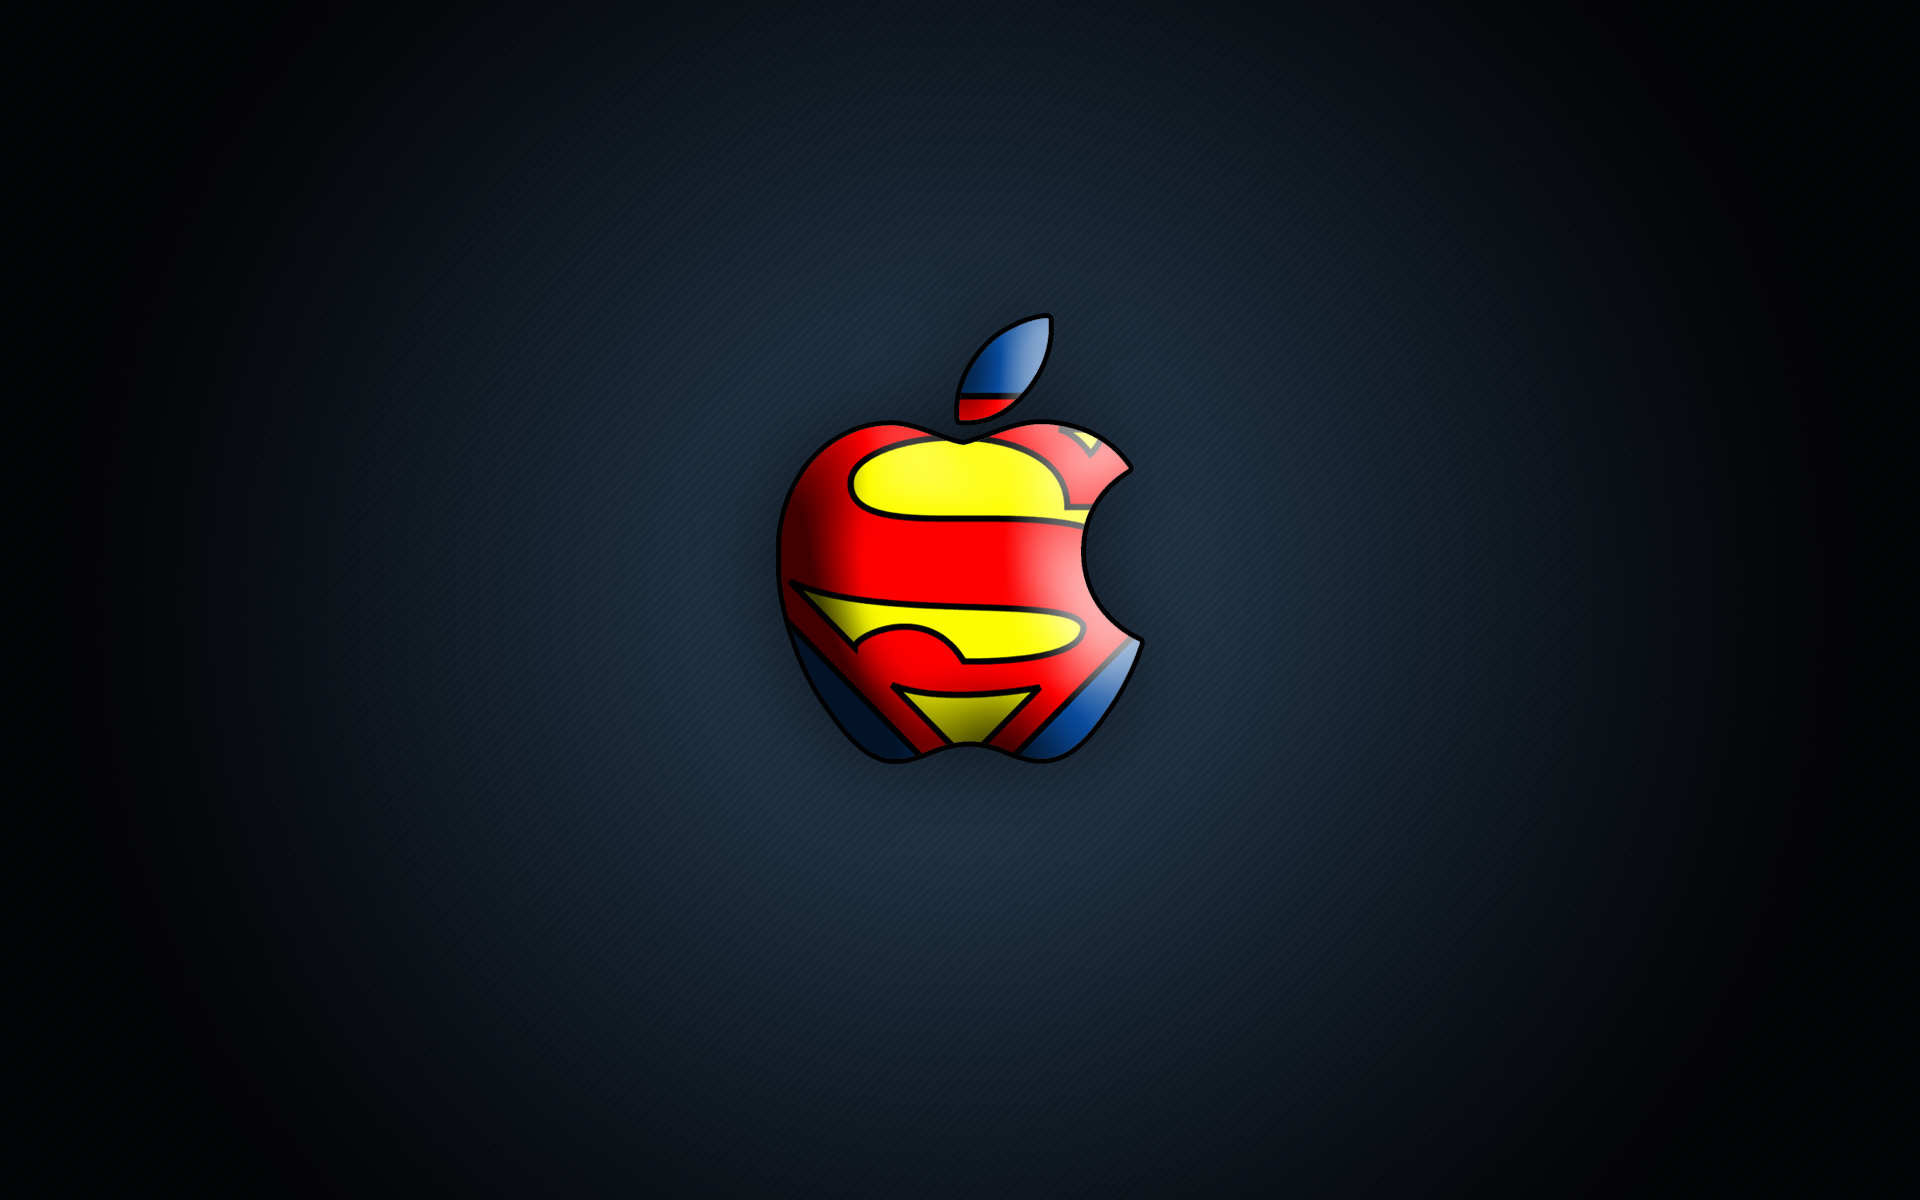 Cool Apple Wallpapers  Free wallpaper download 1920x1200